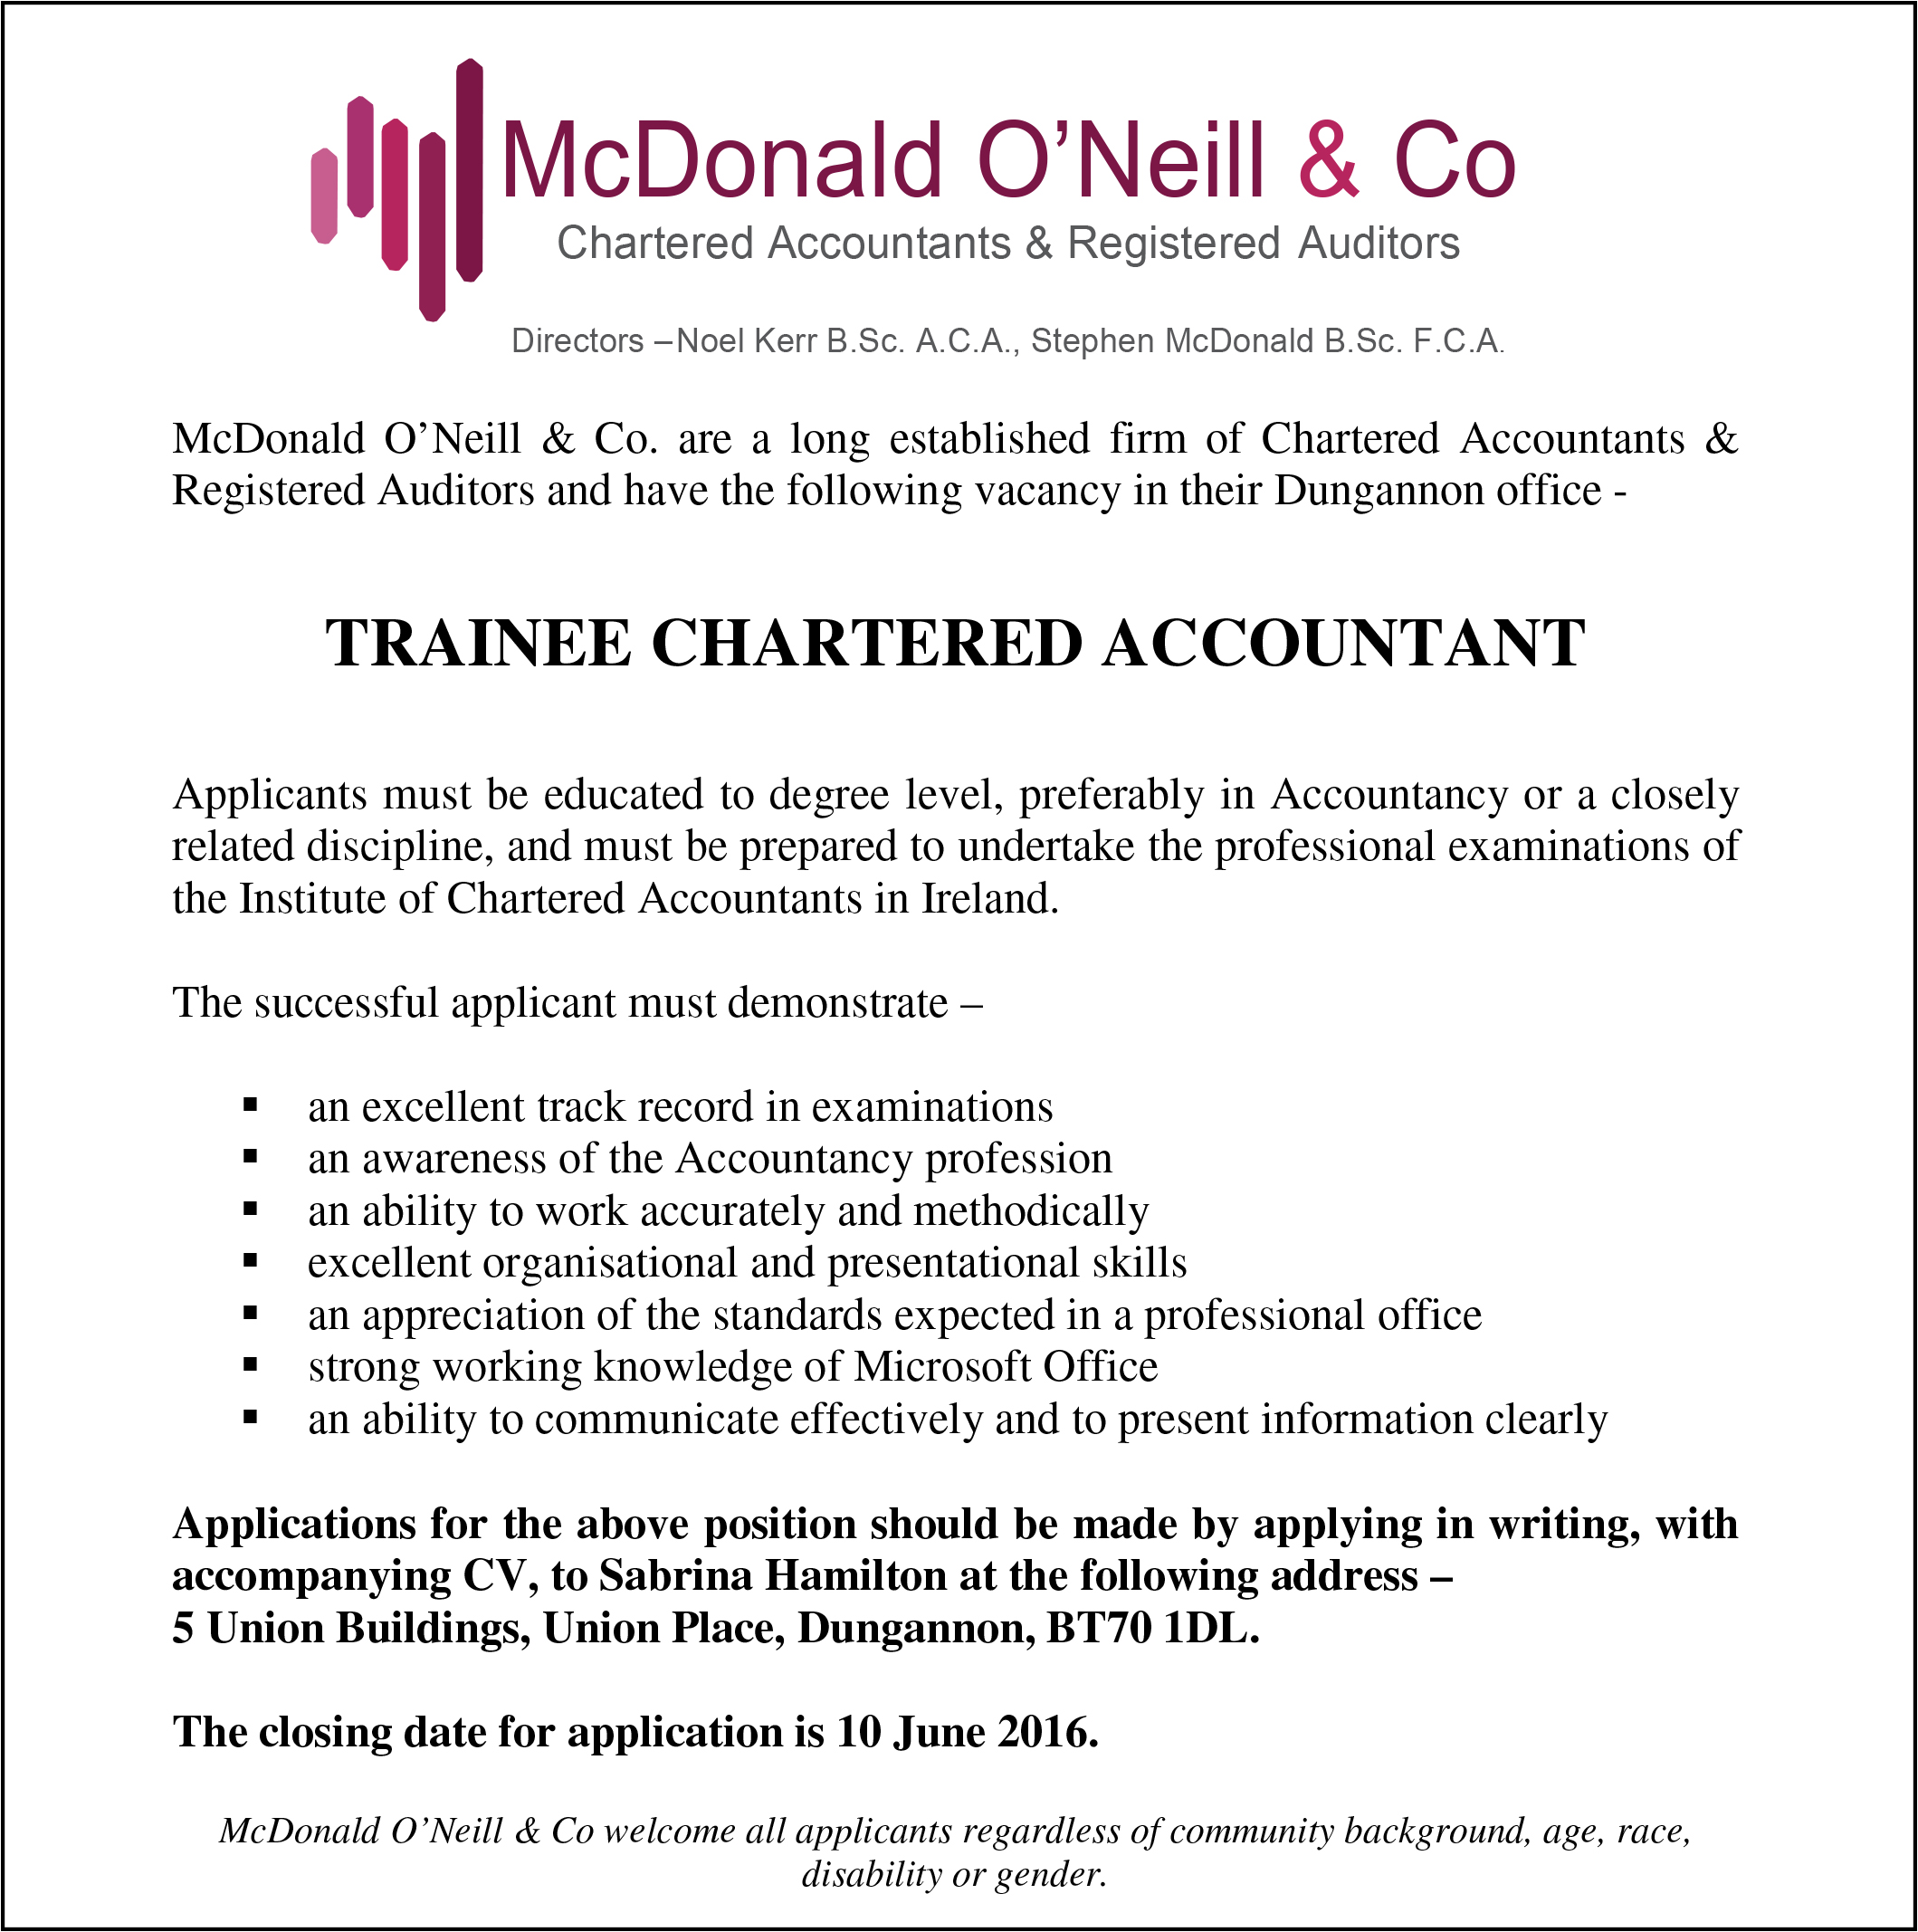 mcdonald oneill co careers mcdonald oneill careers